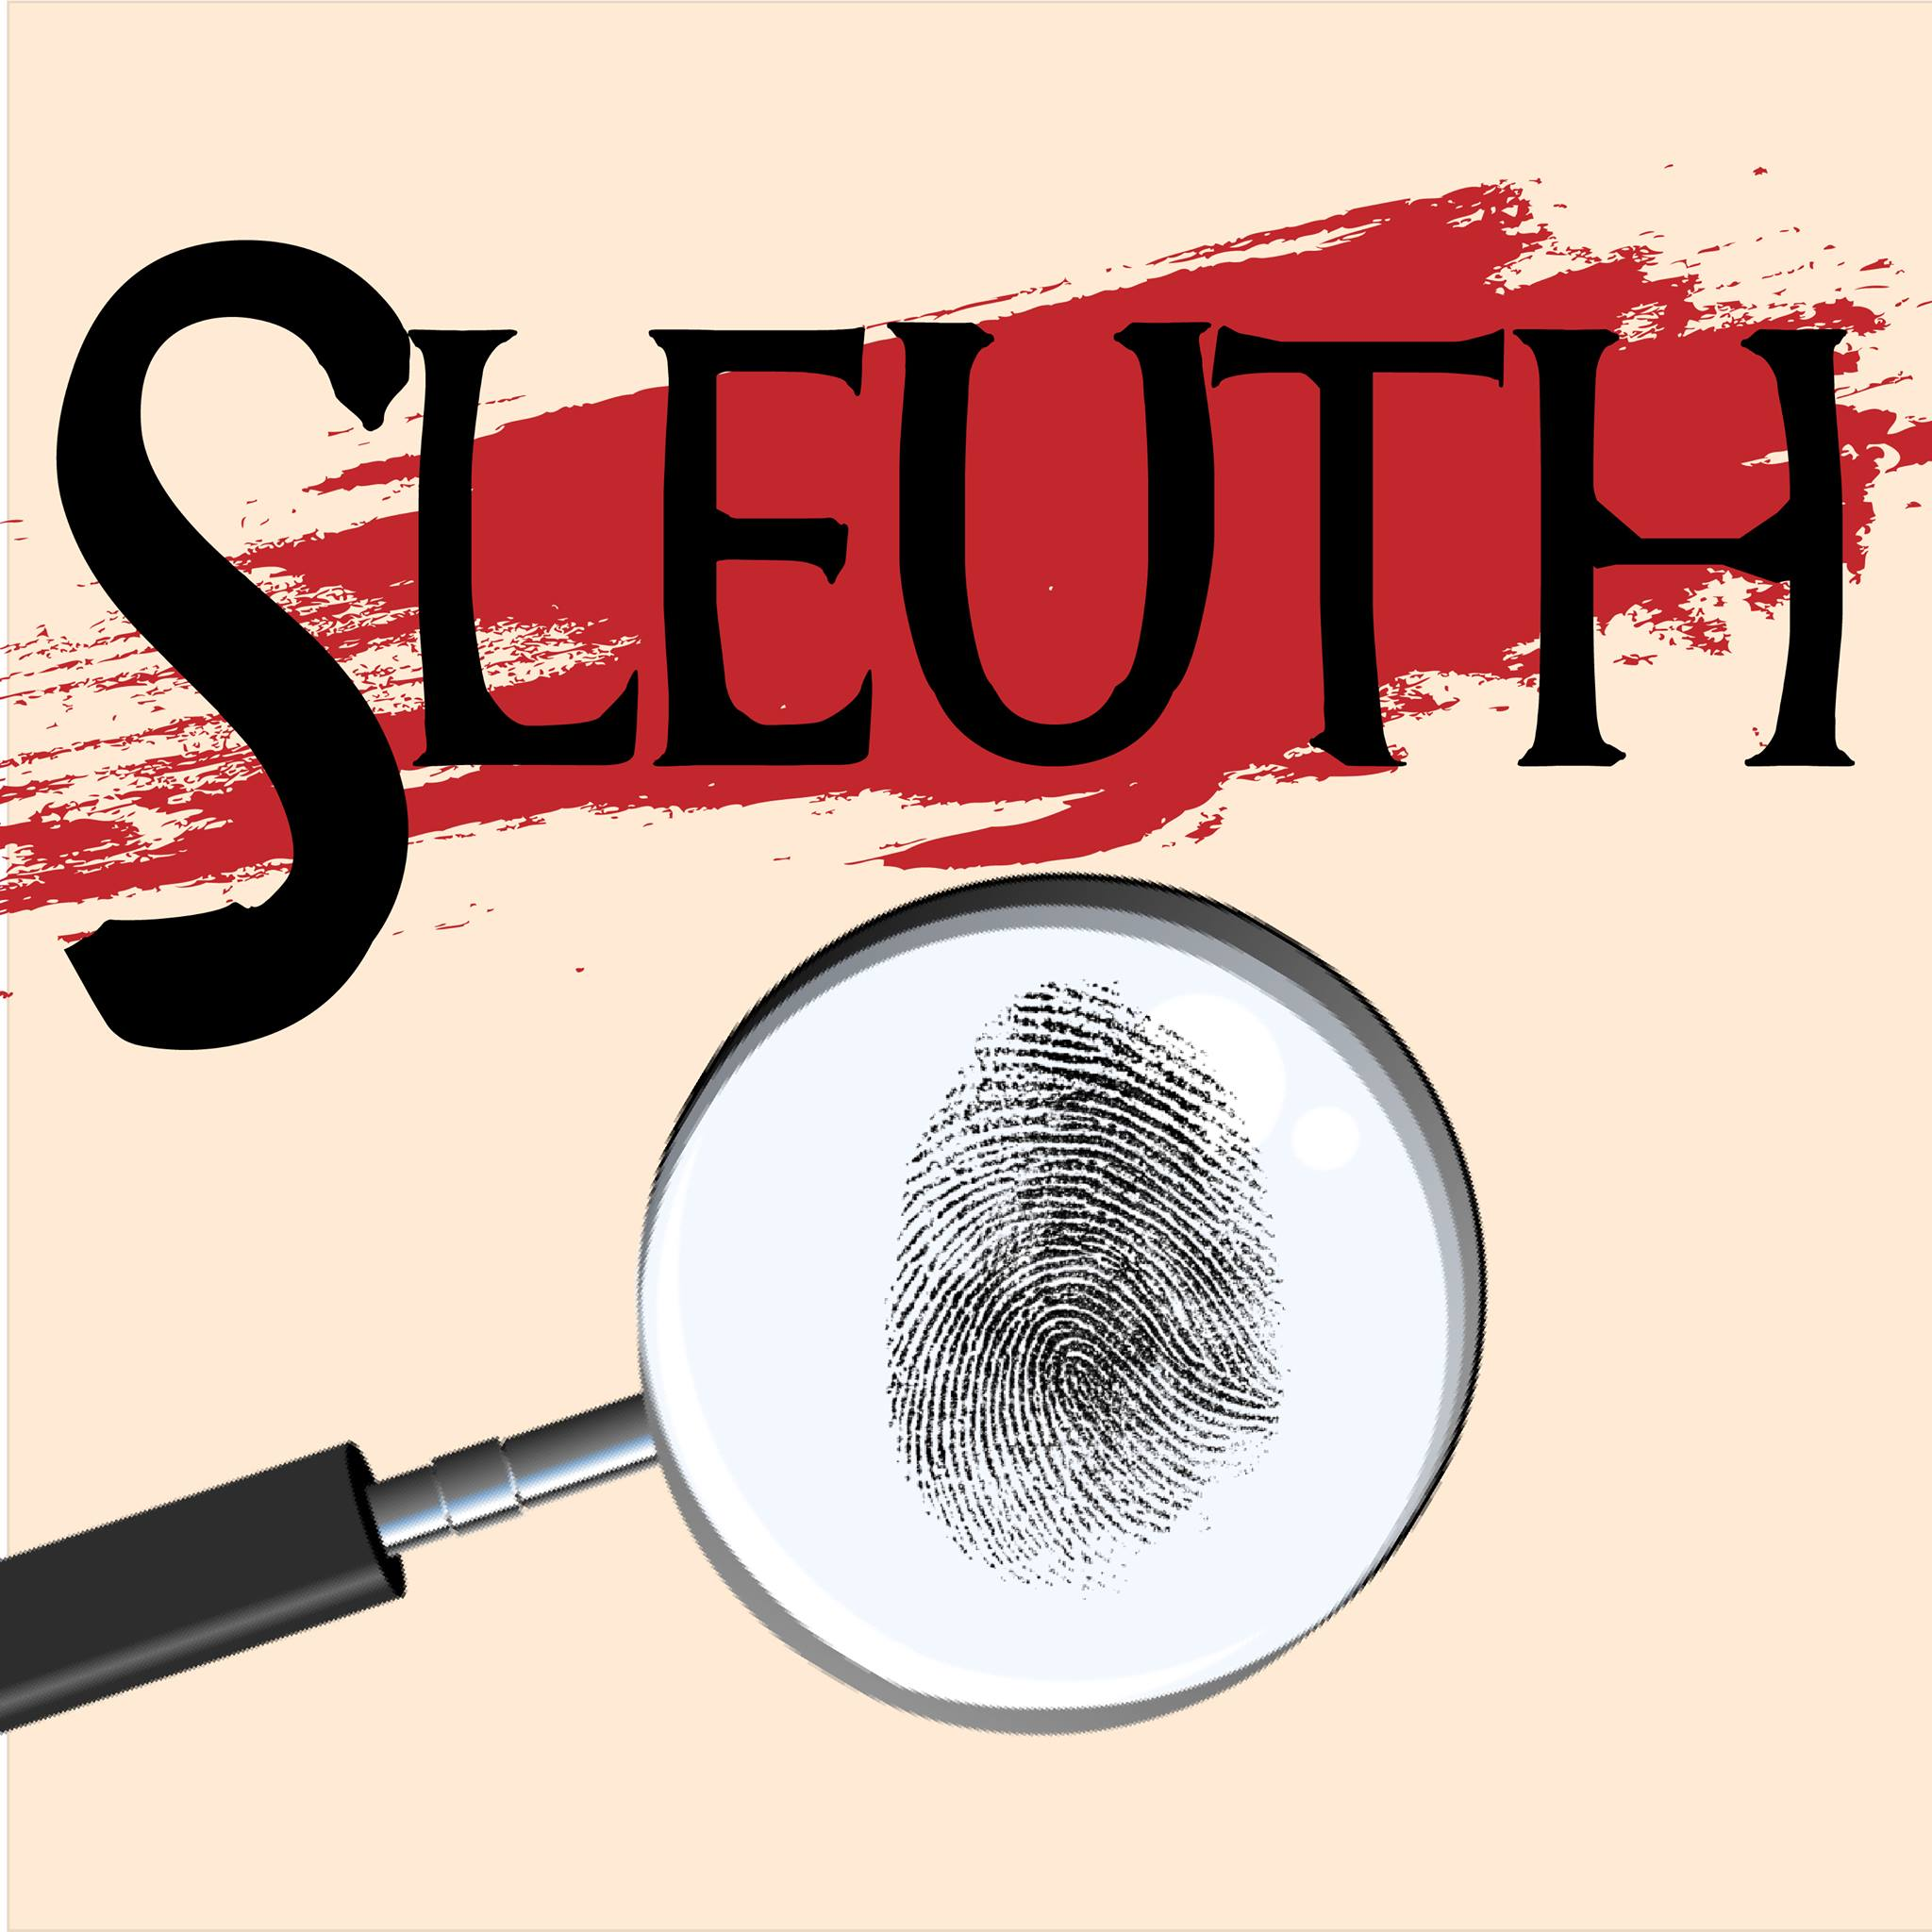 Auditions for Two Male Roles (30s-50s)  in SLEUTH, by Wimberley Players